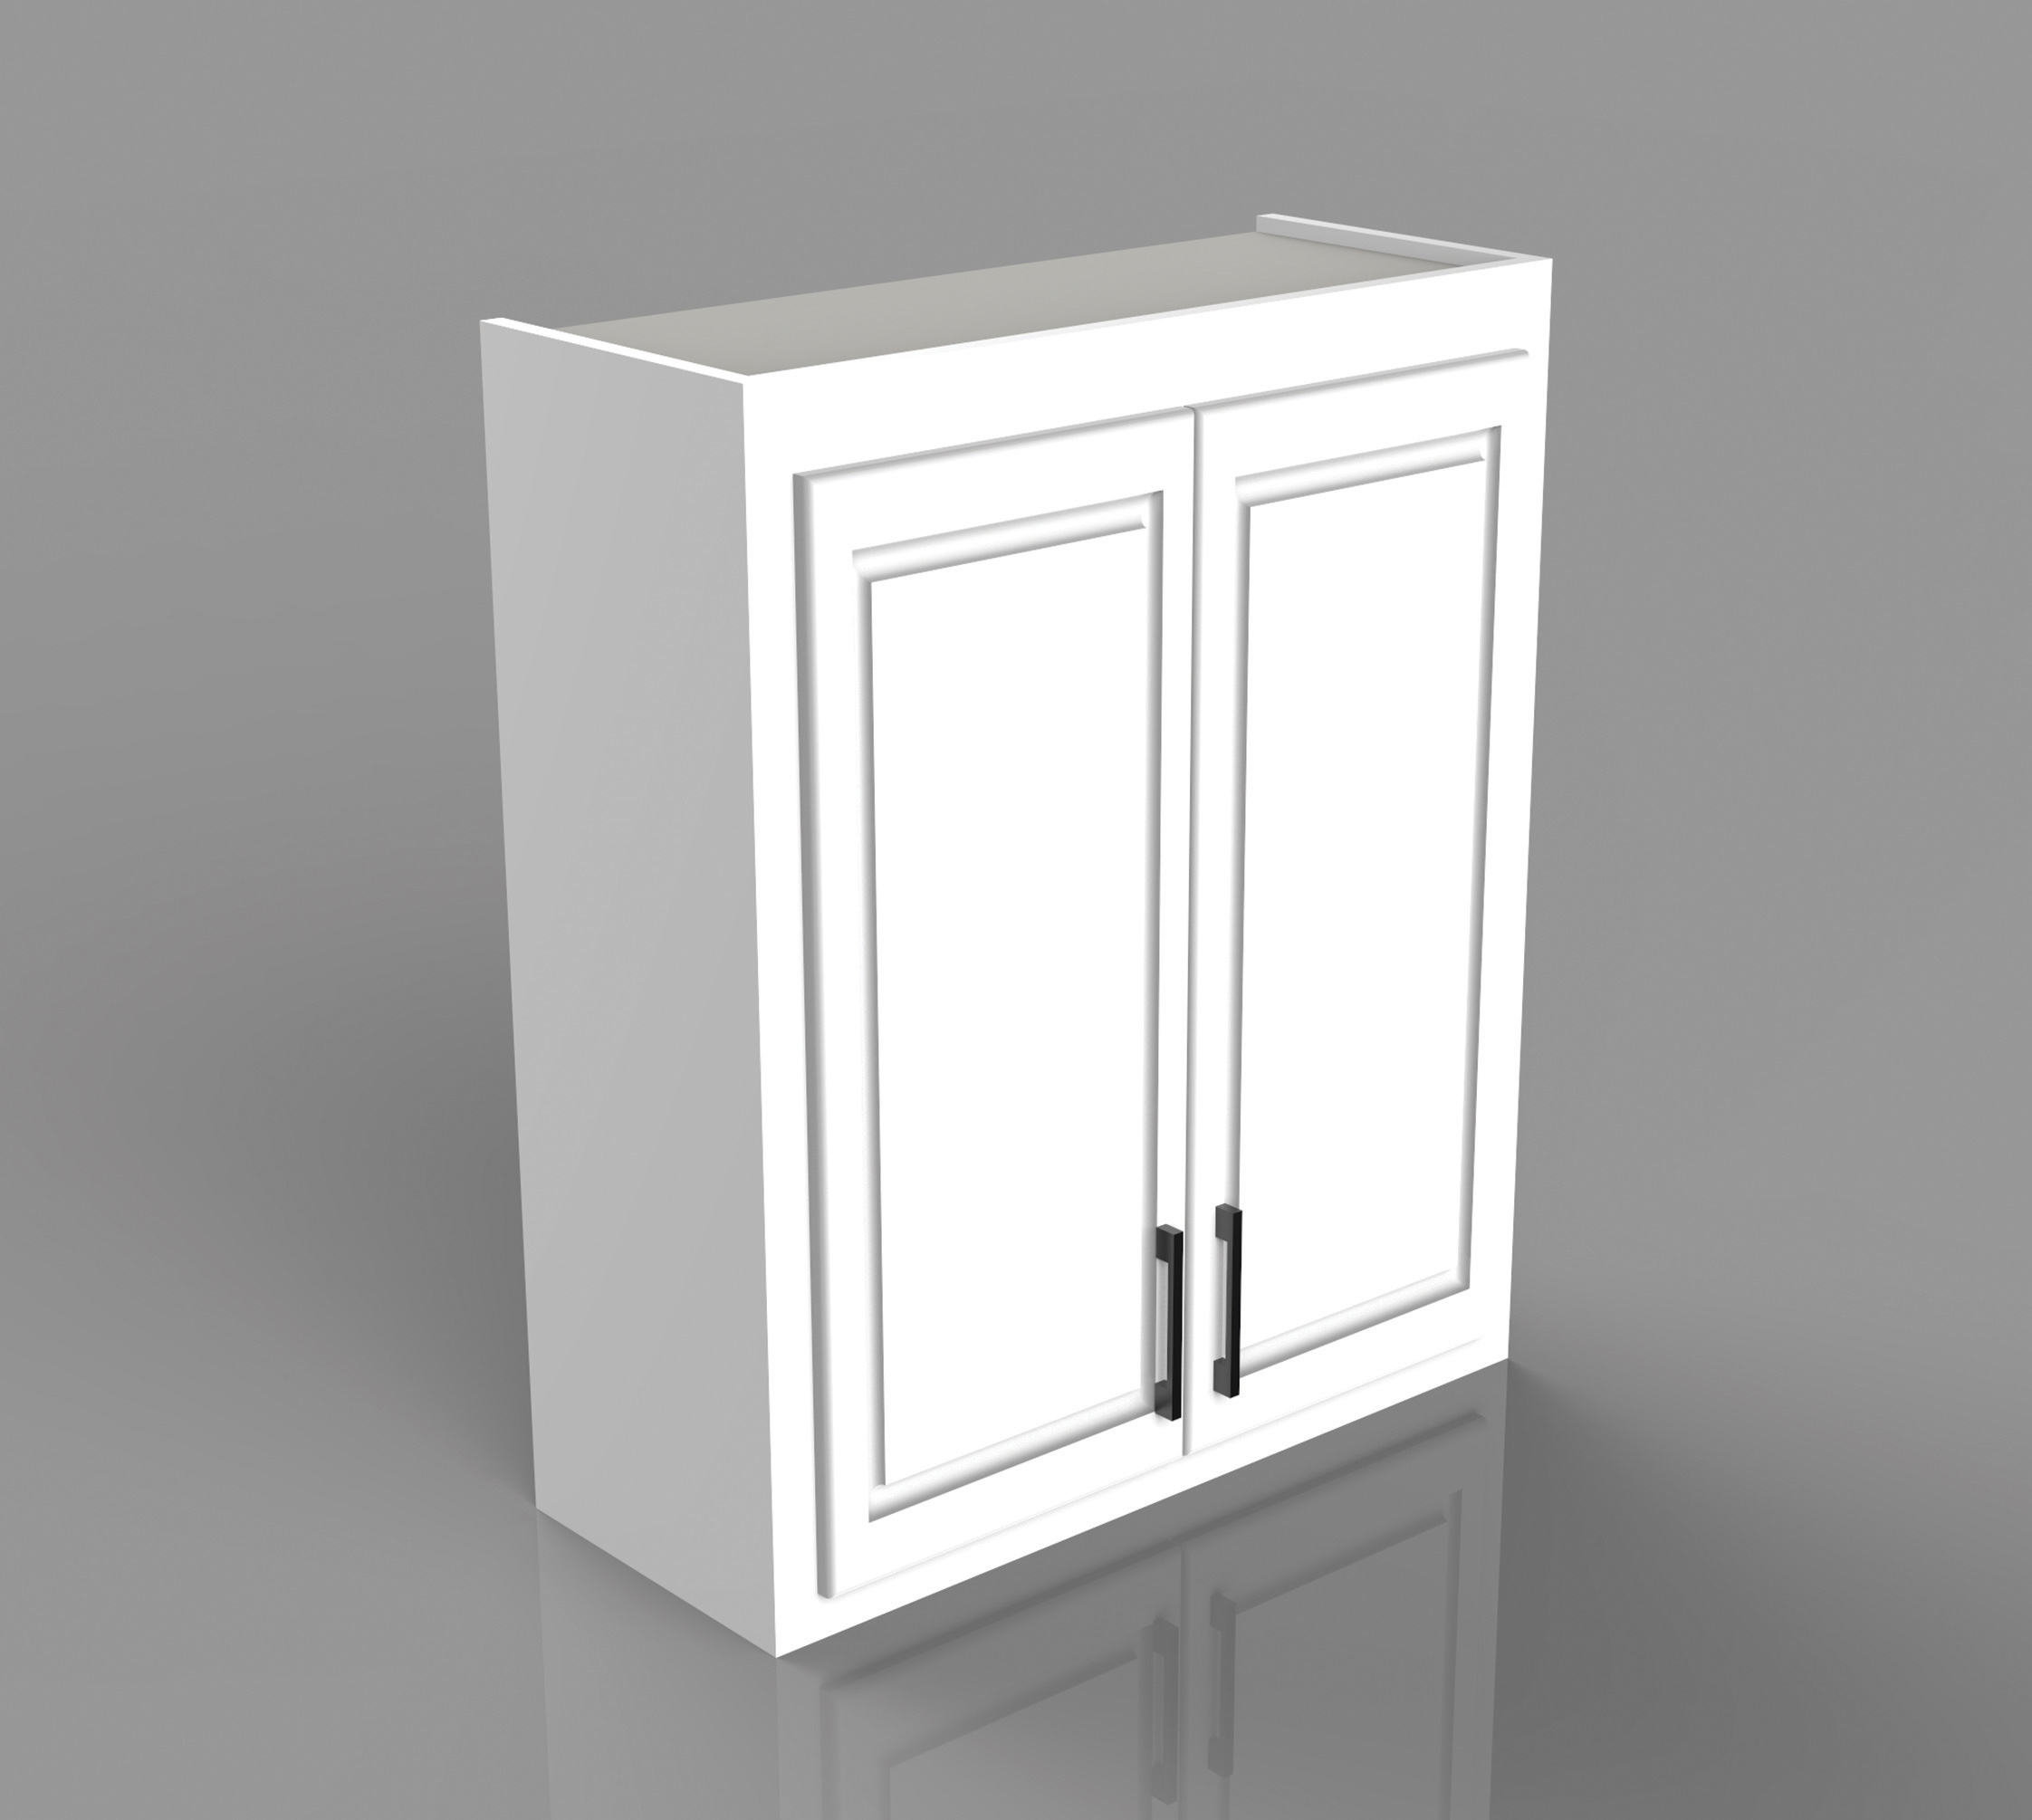 Example of a residential double door upper cabinet